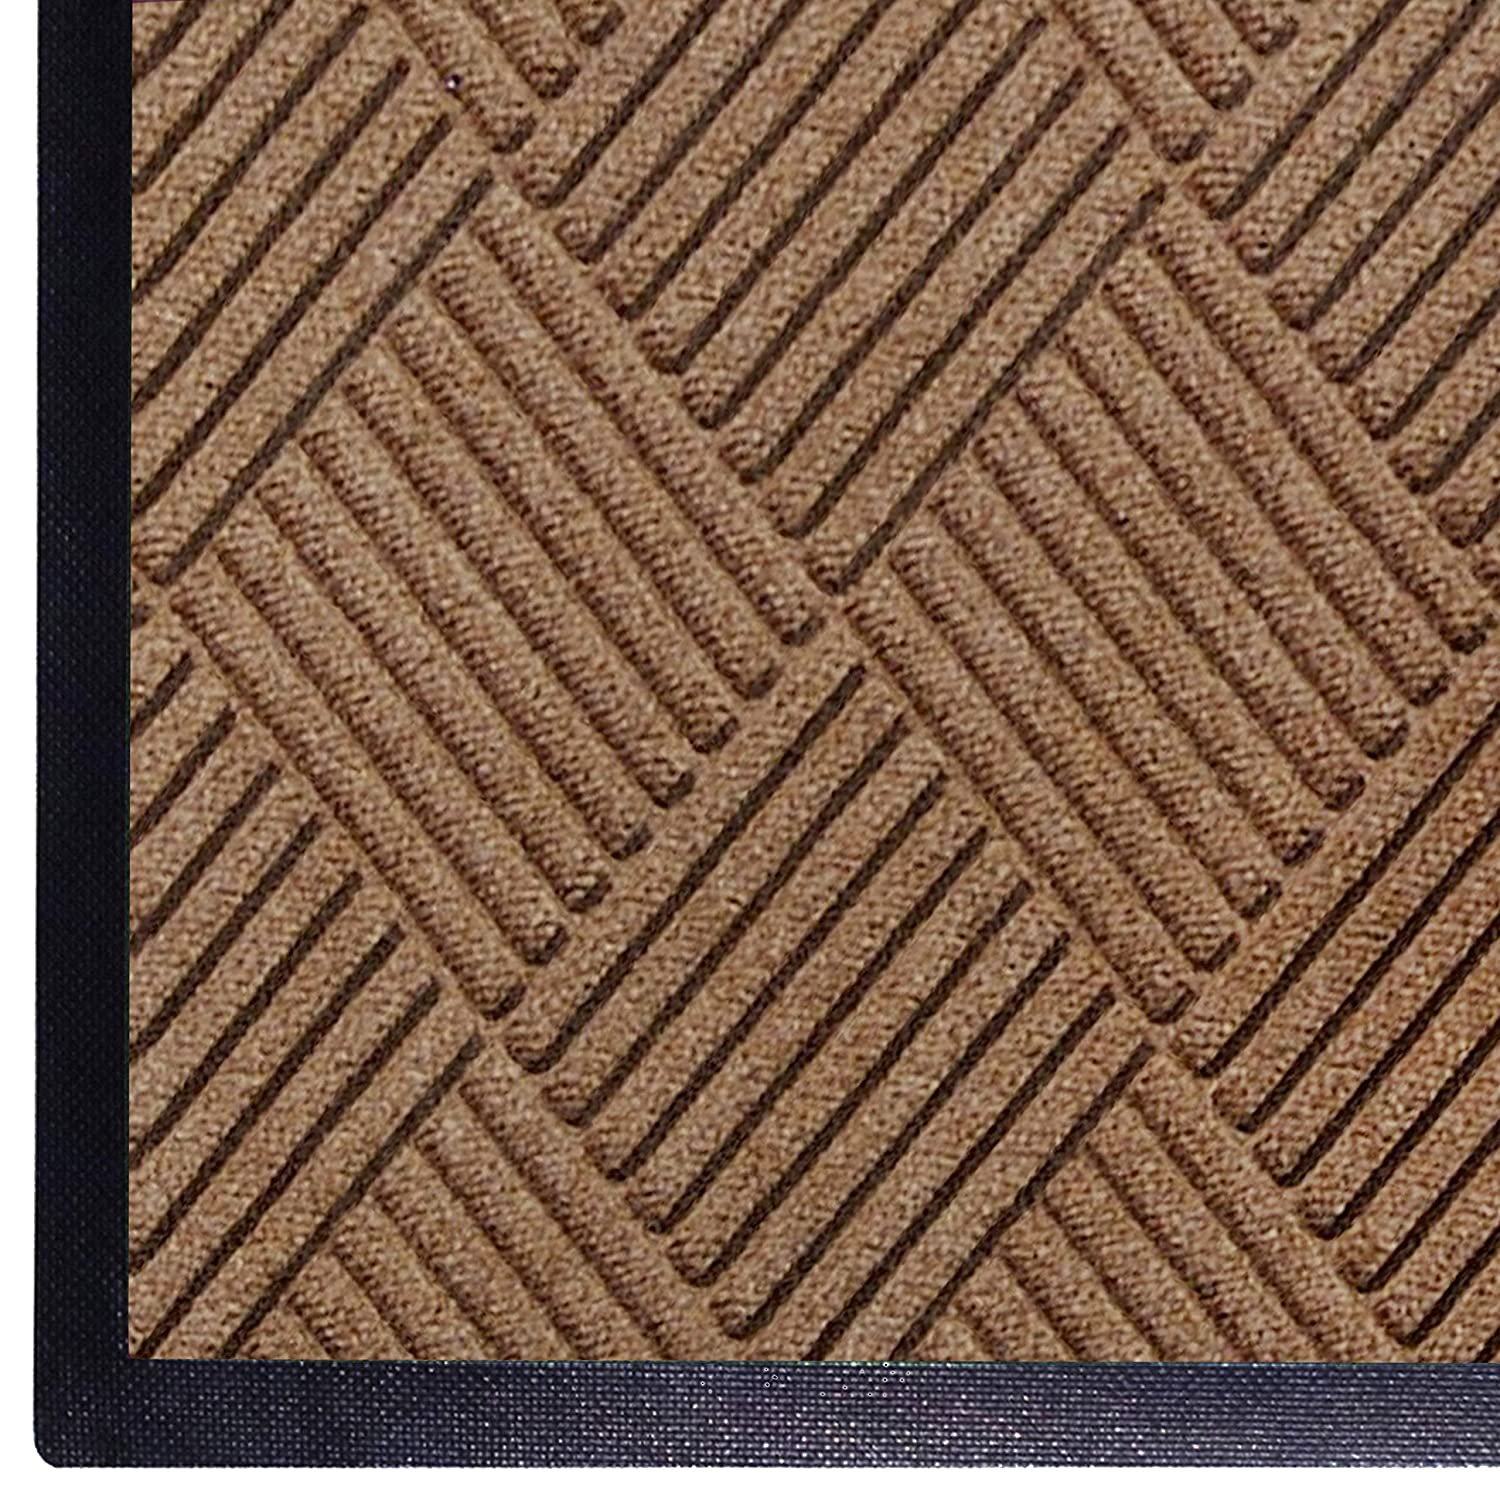 High quality new WaterHog Diamond Al sold out. Commercial-Grade Entrance Rubber Bor with Mat